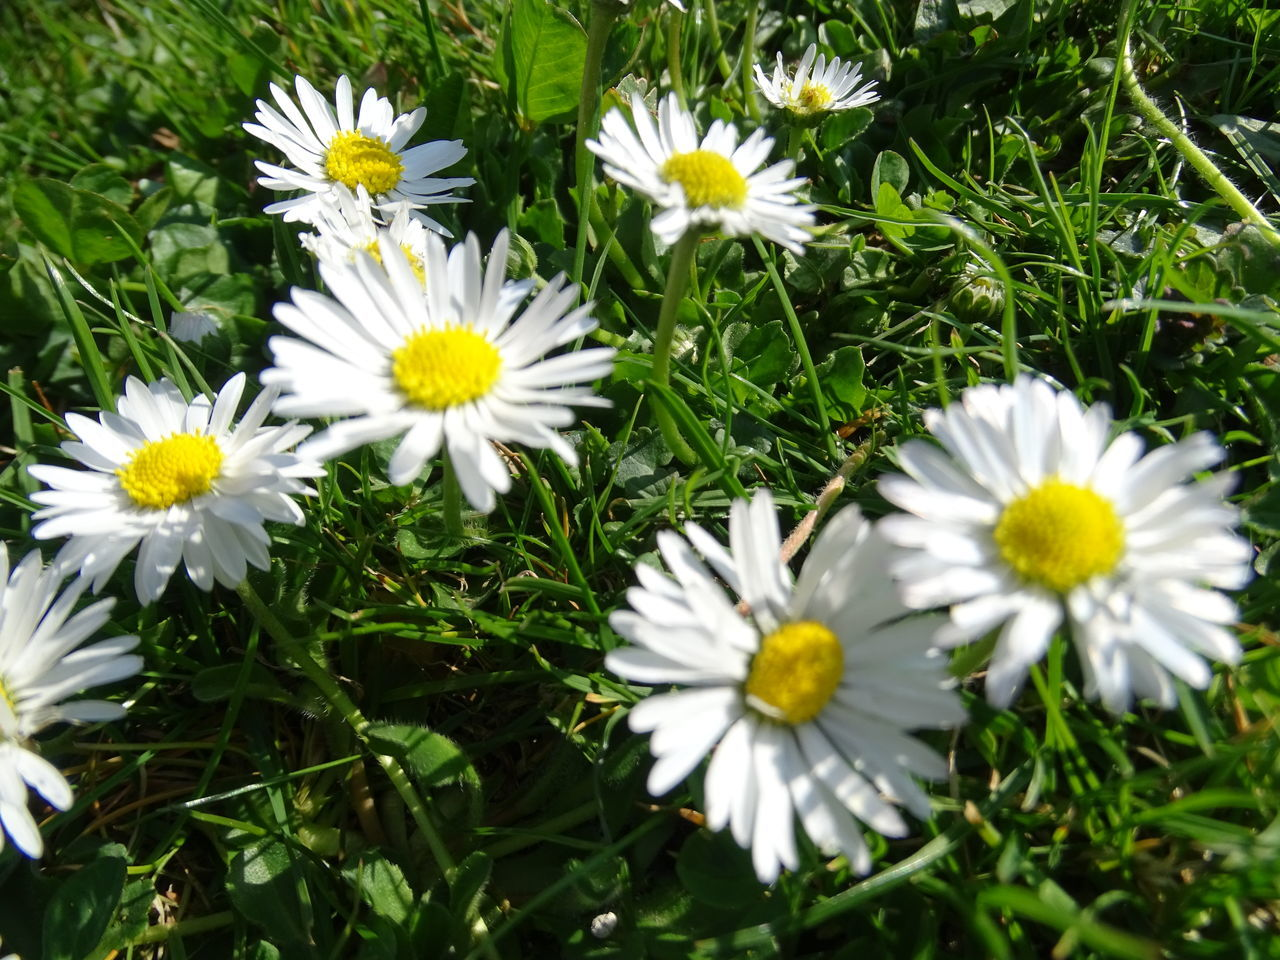 flower, nature, petal, growth, beauty in nature, blooming, freshness, yellow, daisy, white color, fragility, plant, flower head, field, outdoors, no people, day, close-up